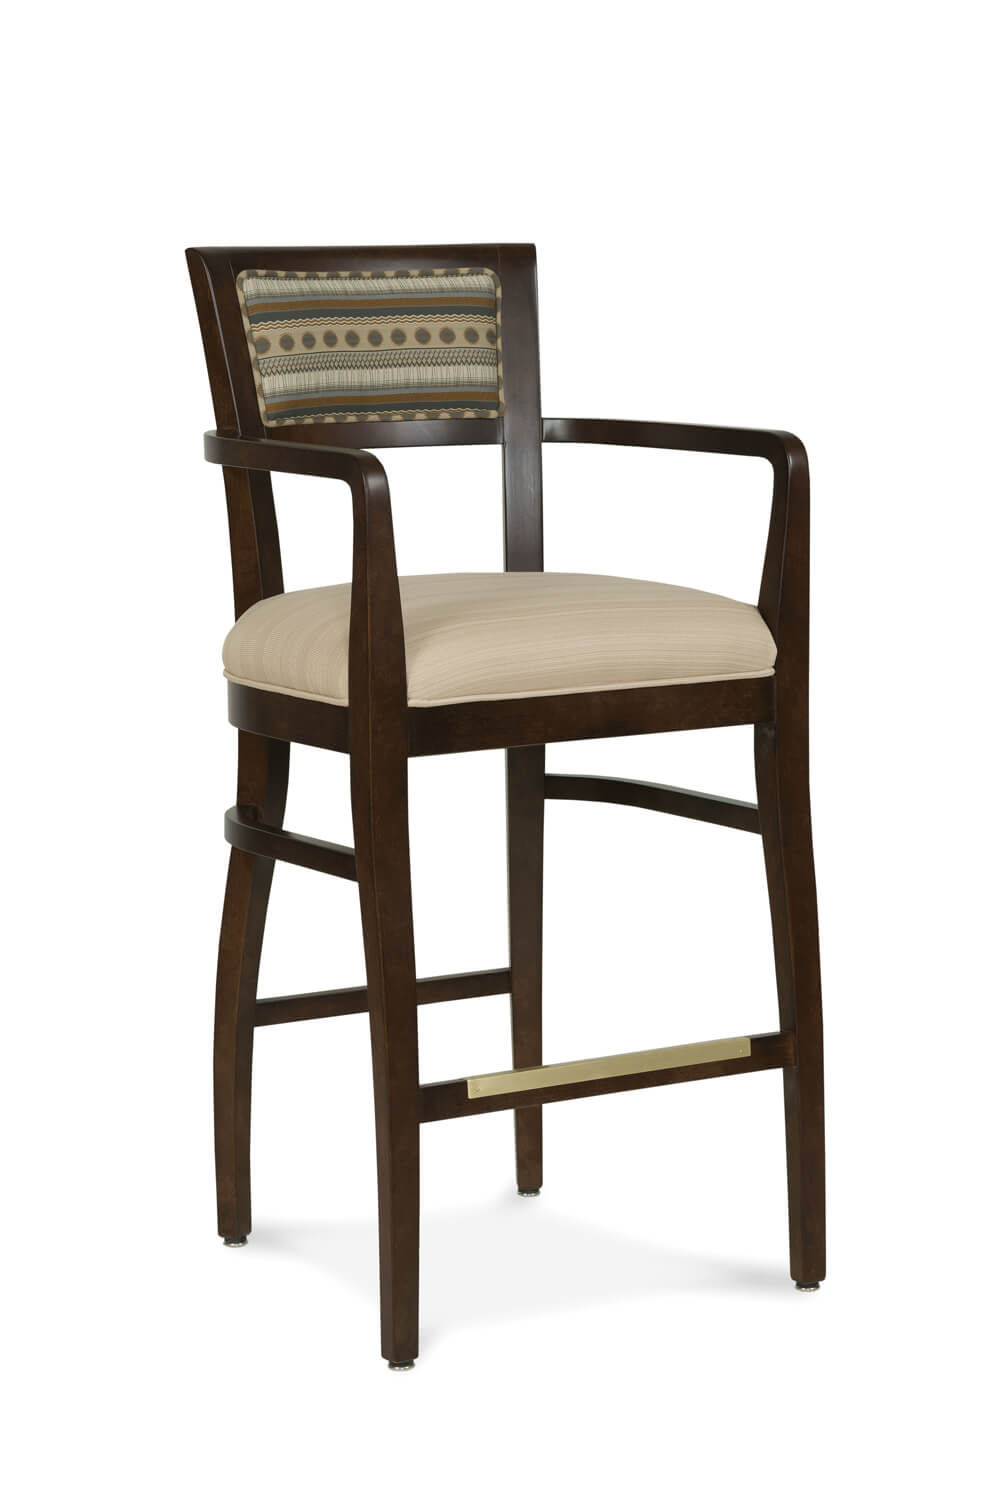 Fairfield Chair's Naples Wooden Bar Stool with Arms